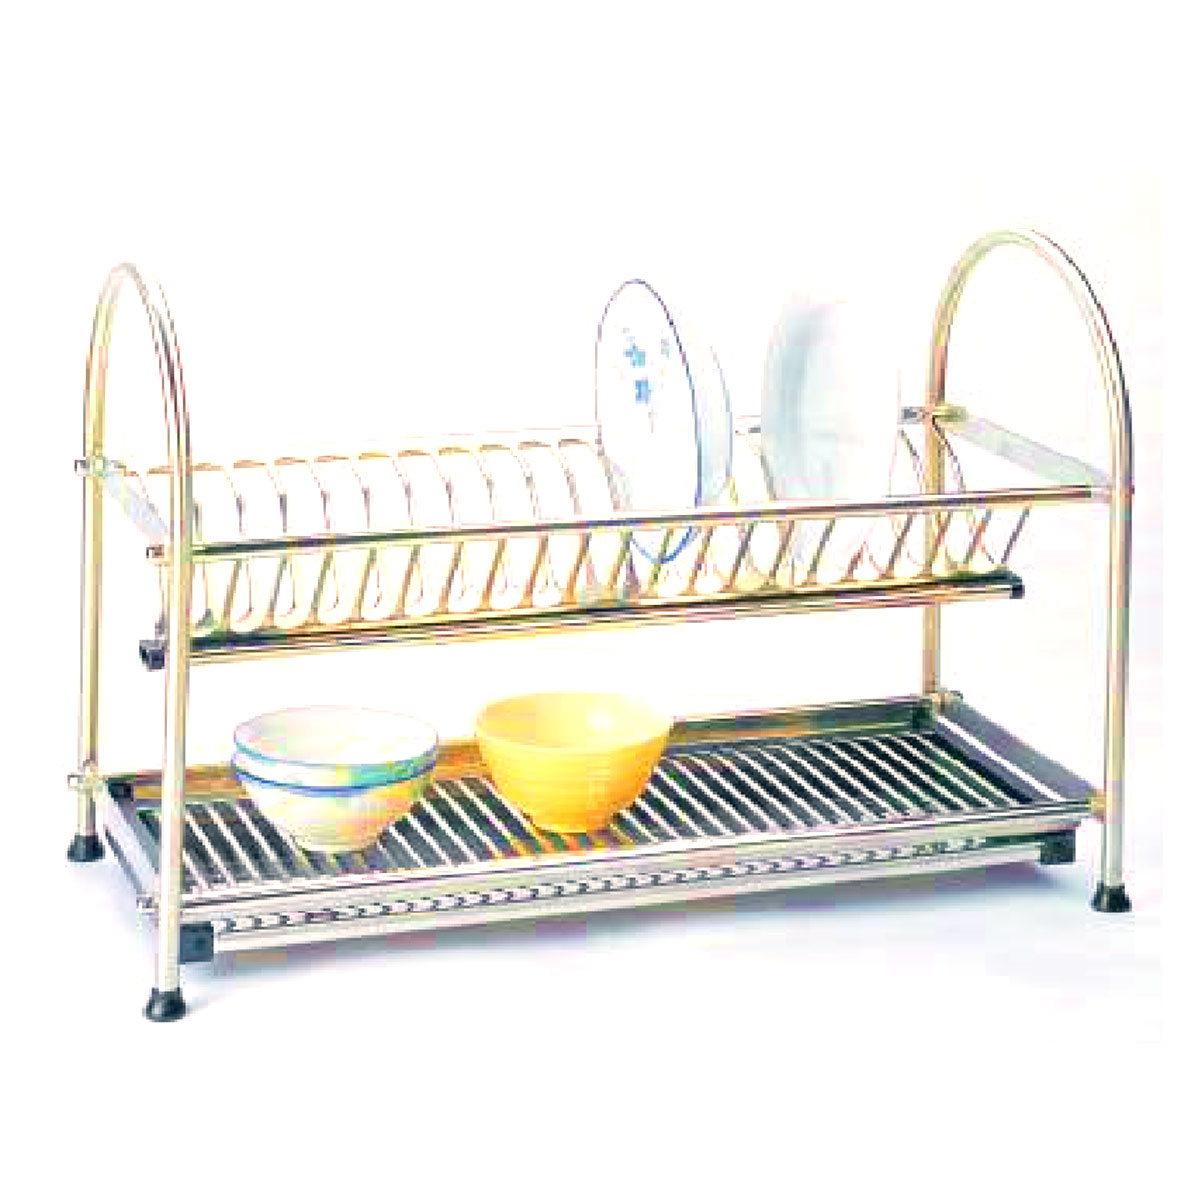 Stainless Steel 201 Dish Rack